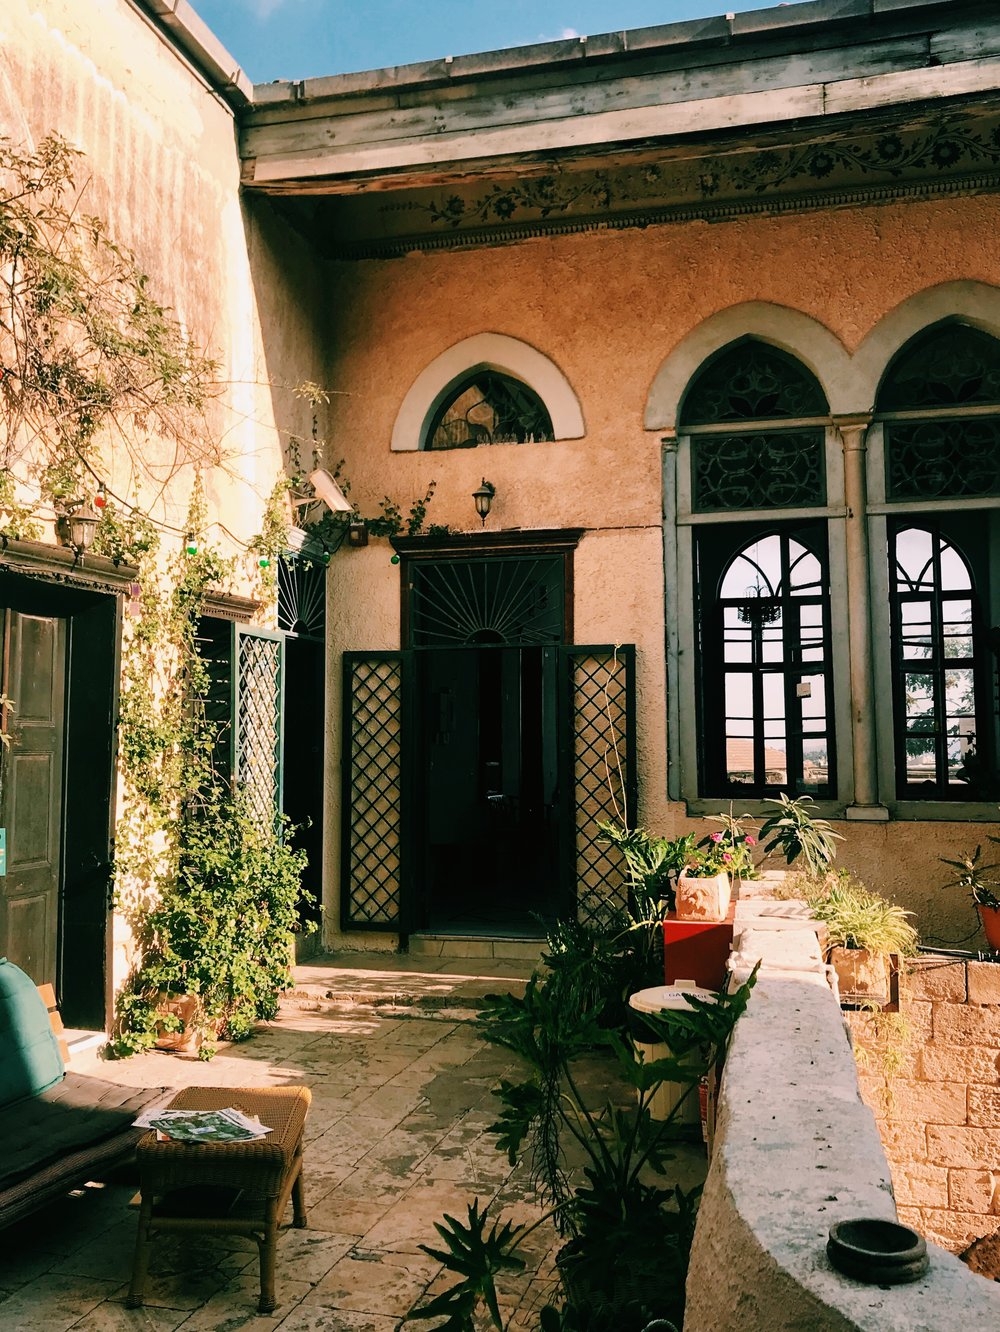 Fauzi Azar Inn  /// a restored 200 year old Ottoman mansion of the Azar family, now a guesthouse